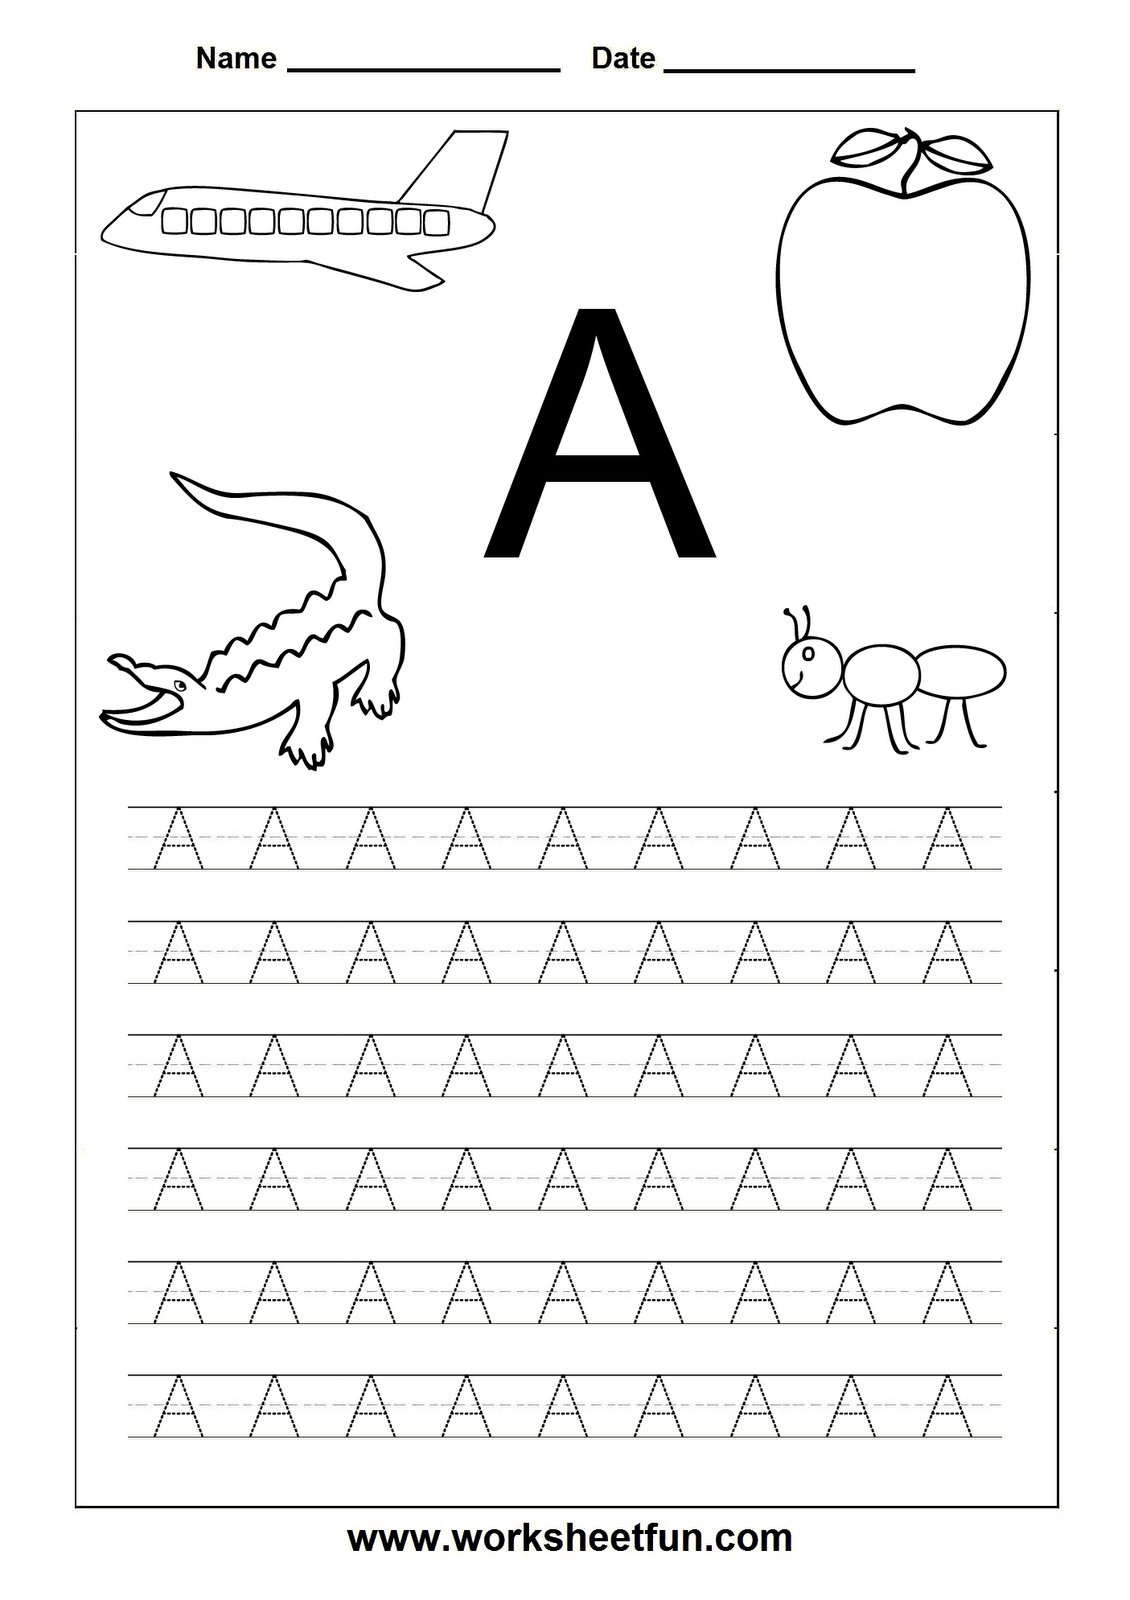 A Z Capital Letter Tracing Worksheets There Are Plenty